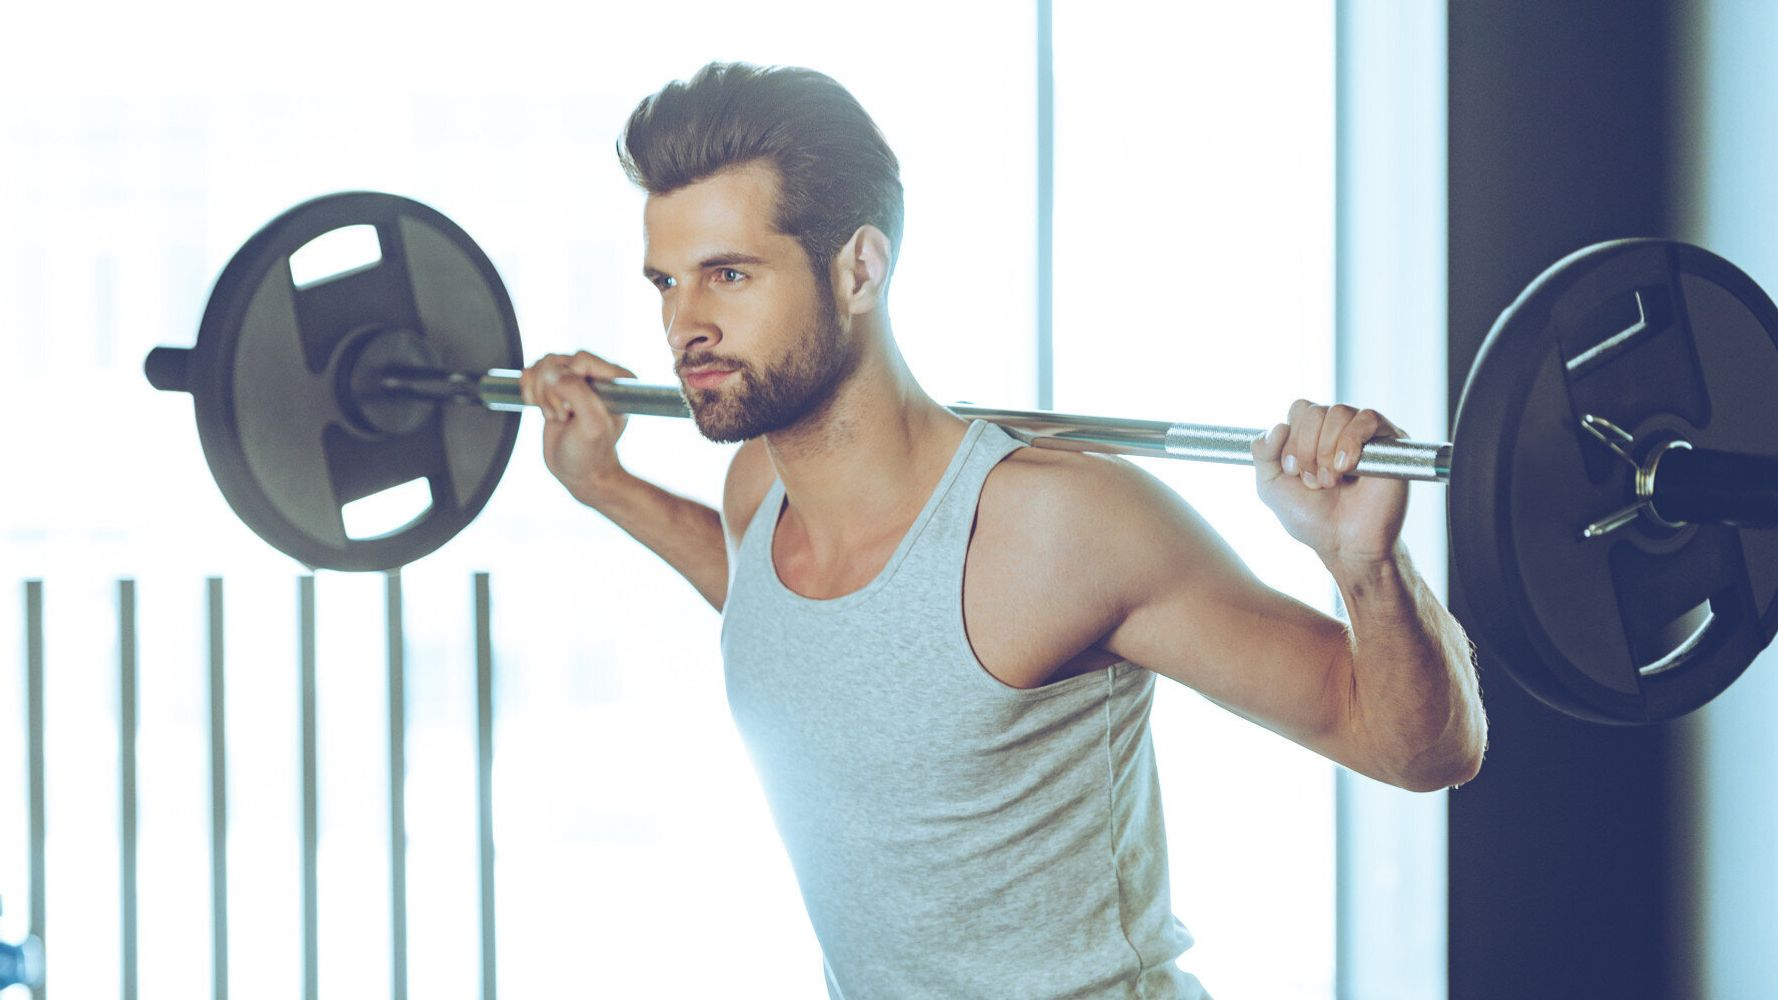 Why Are My Muscles Not Growing? The Training Effect